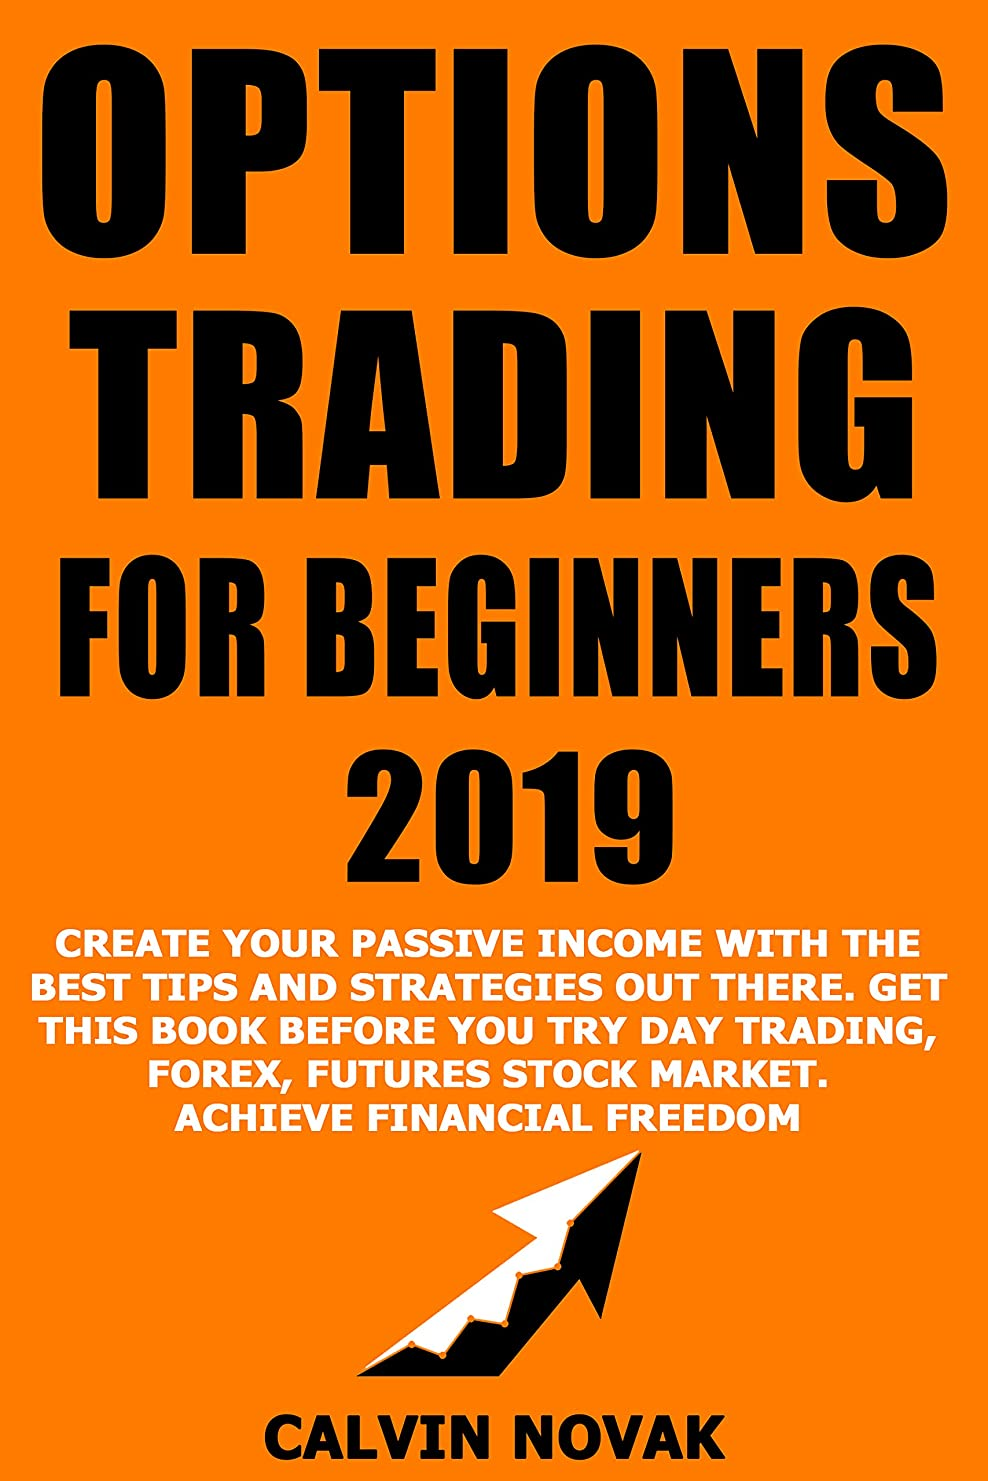 OPTIONS TRADING FOR BEGINNERS 2019.Create your passive income with the best tips and strategies out there.Get this book before you try Day Trading,Forex,Futures,stock ... financial freedom. (English Edition)